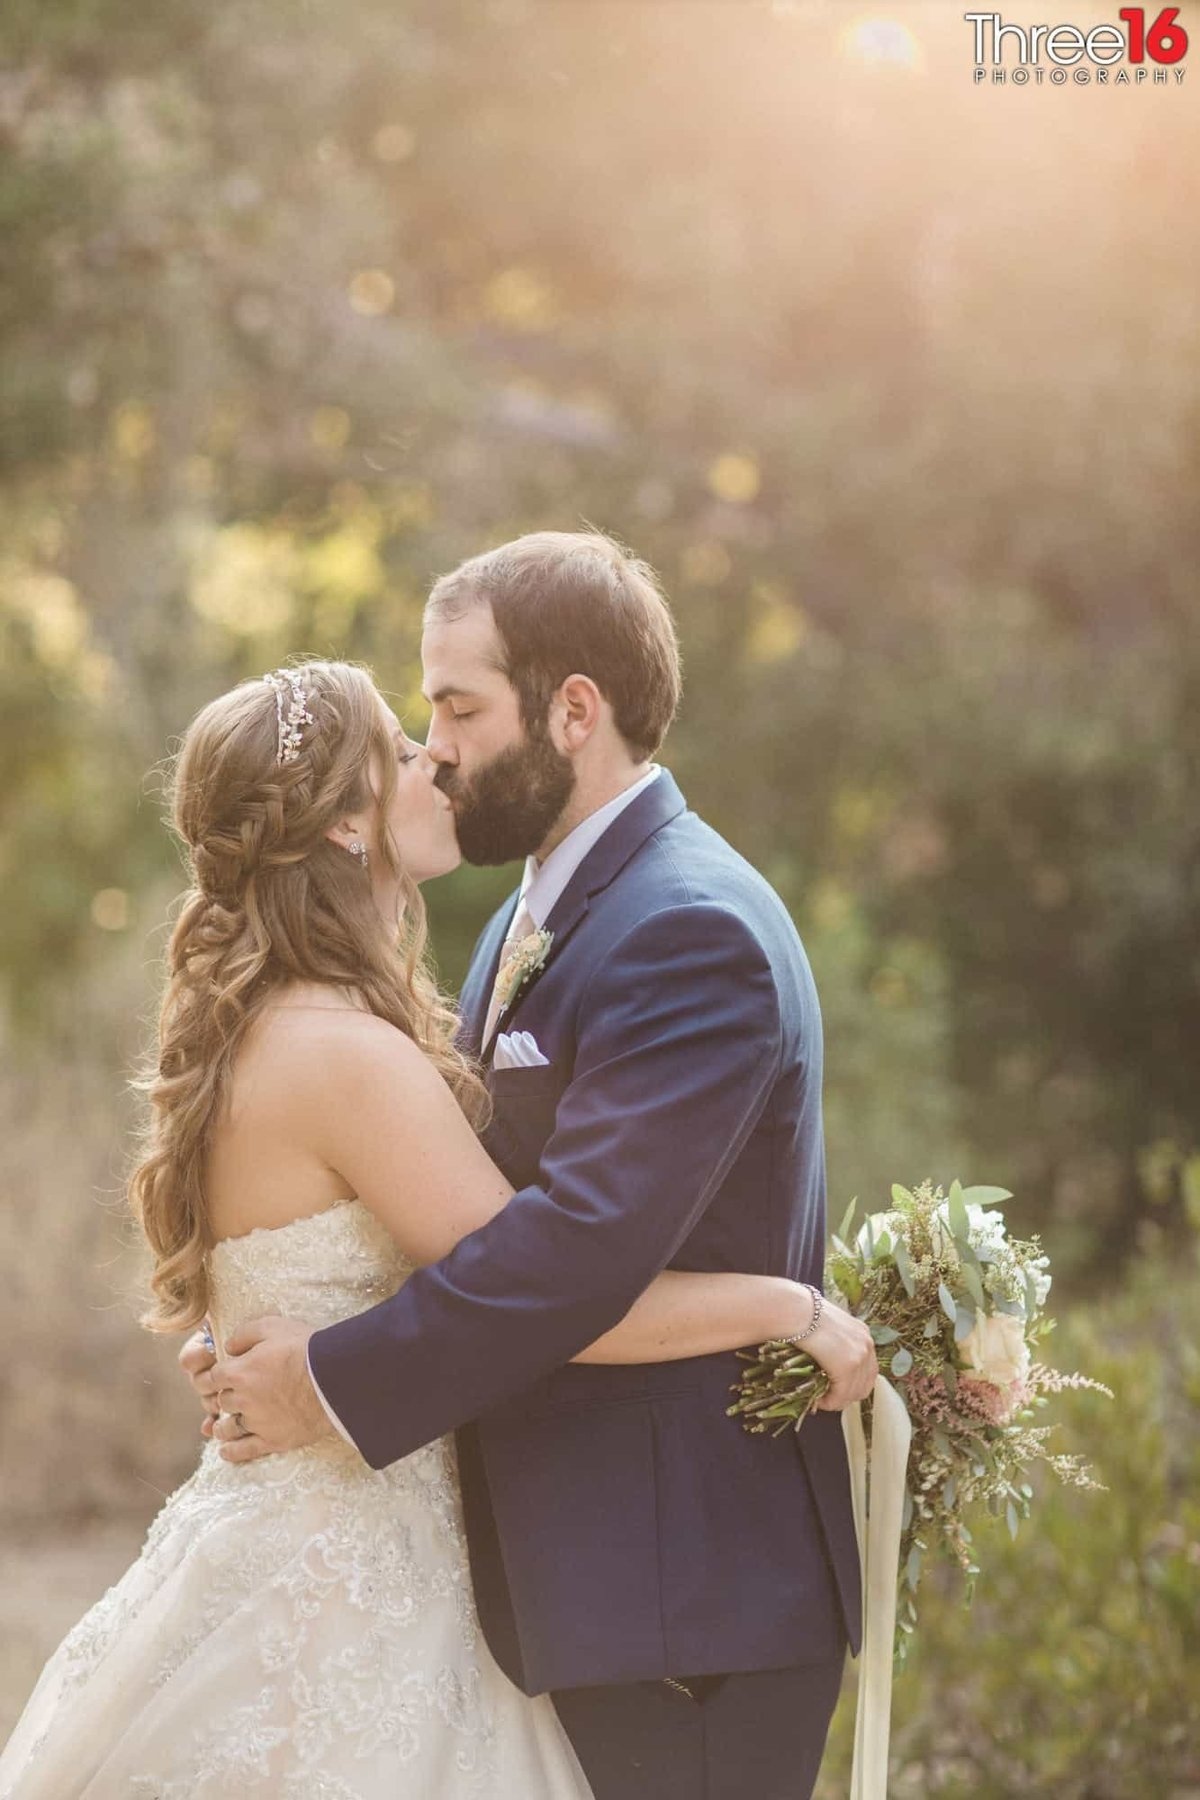 Oak Canyon Nature Center Wedding Anaheim California wedding photographer Ceremony Bride and Groom Outside Ceremony_1